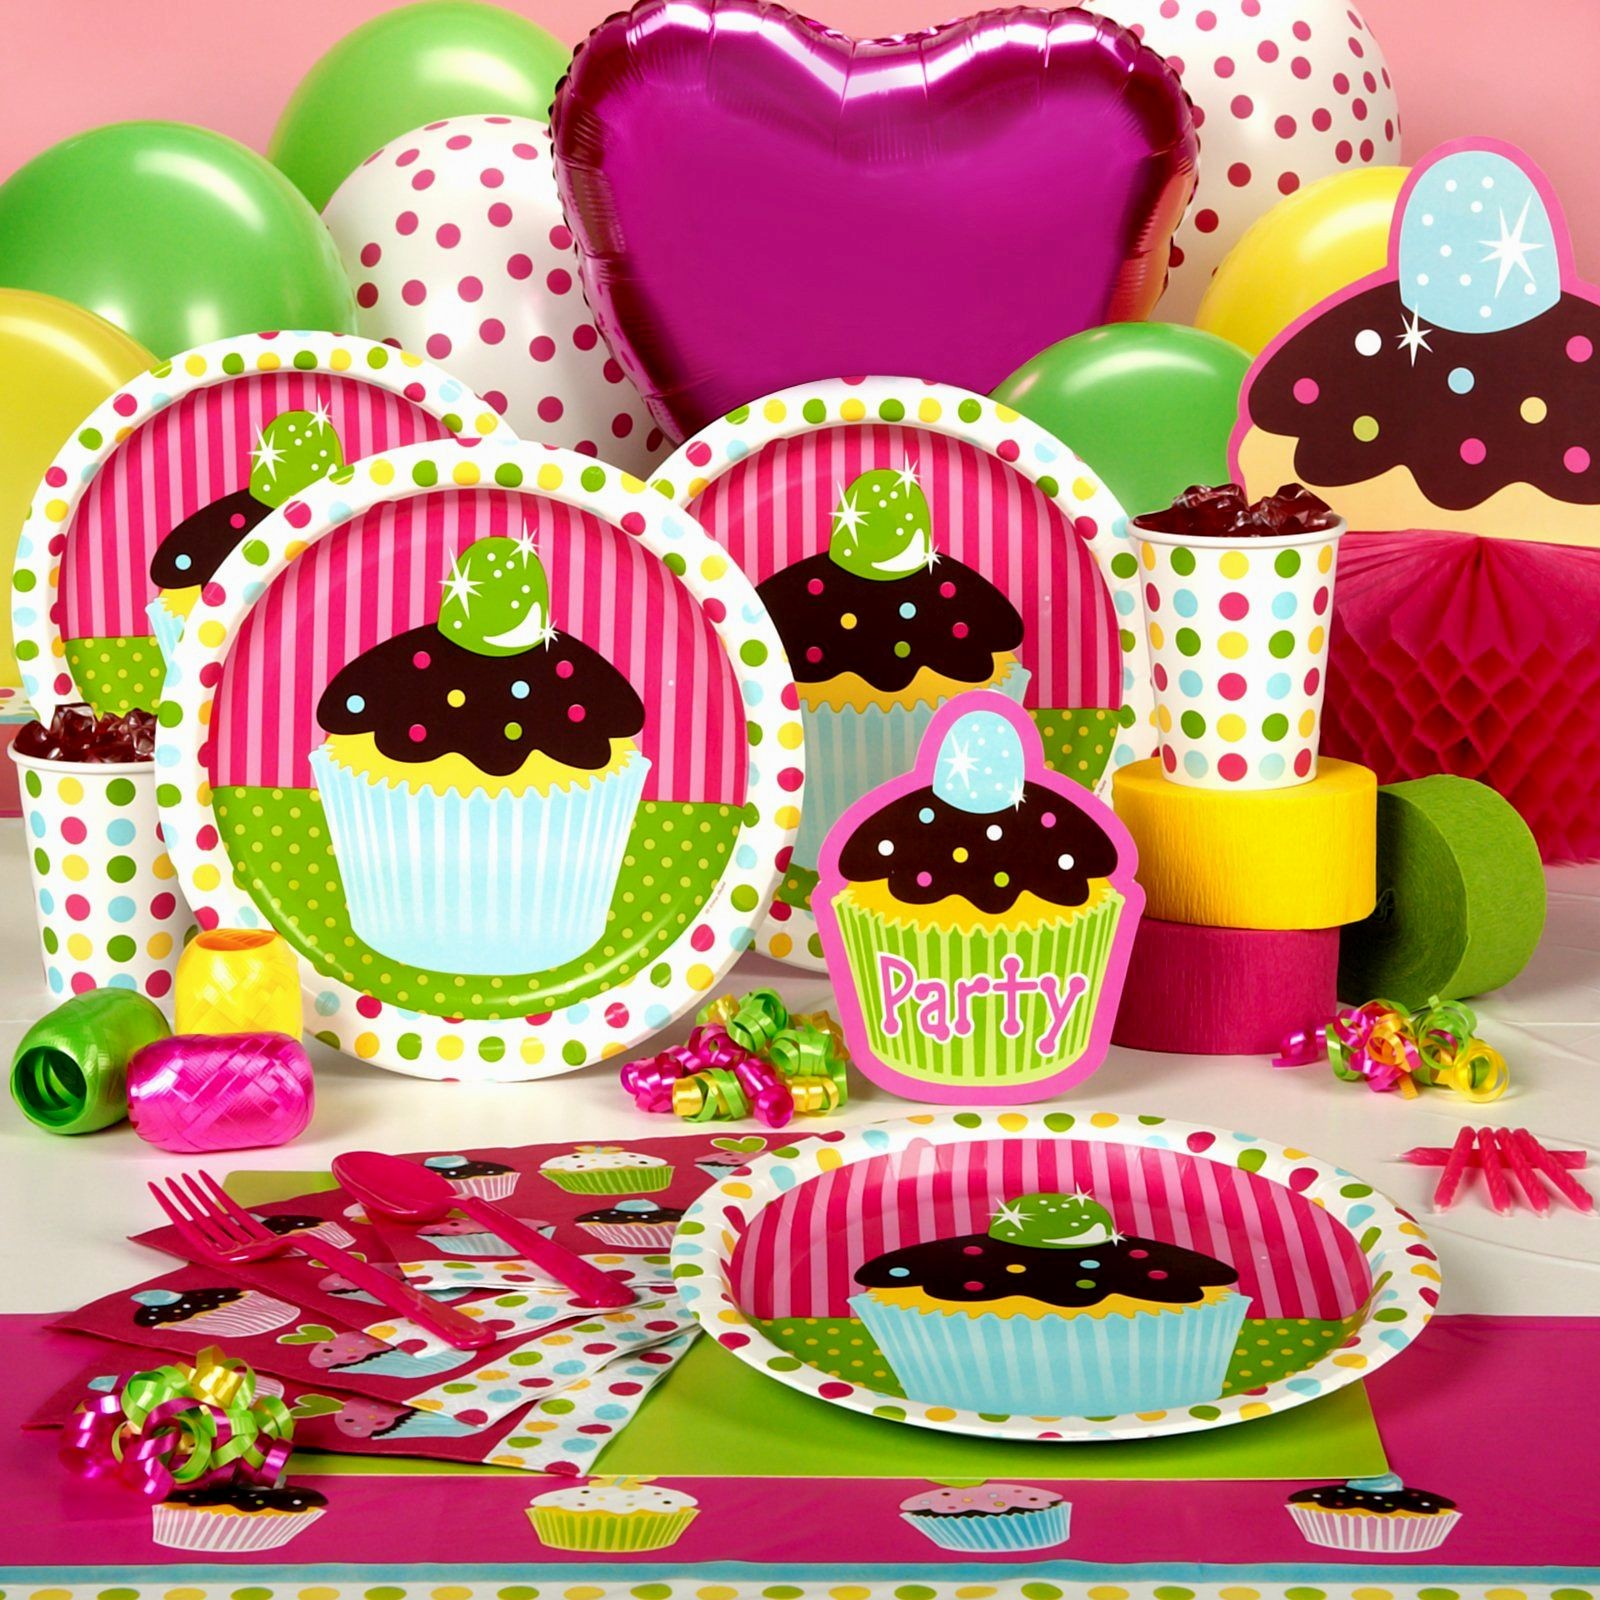 party city birthday themes ; party-city-birthday-themes-unique-decoration-about-themes-birthday-party-city-birthday-party-themes-with-party-city-of-party-city-birthday-themes